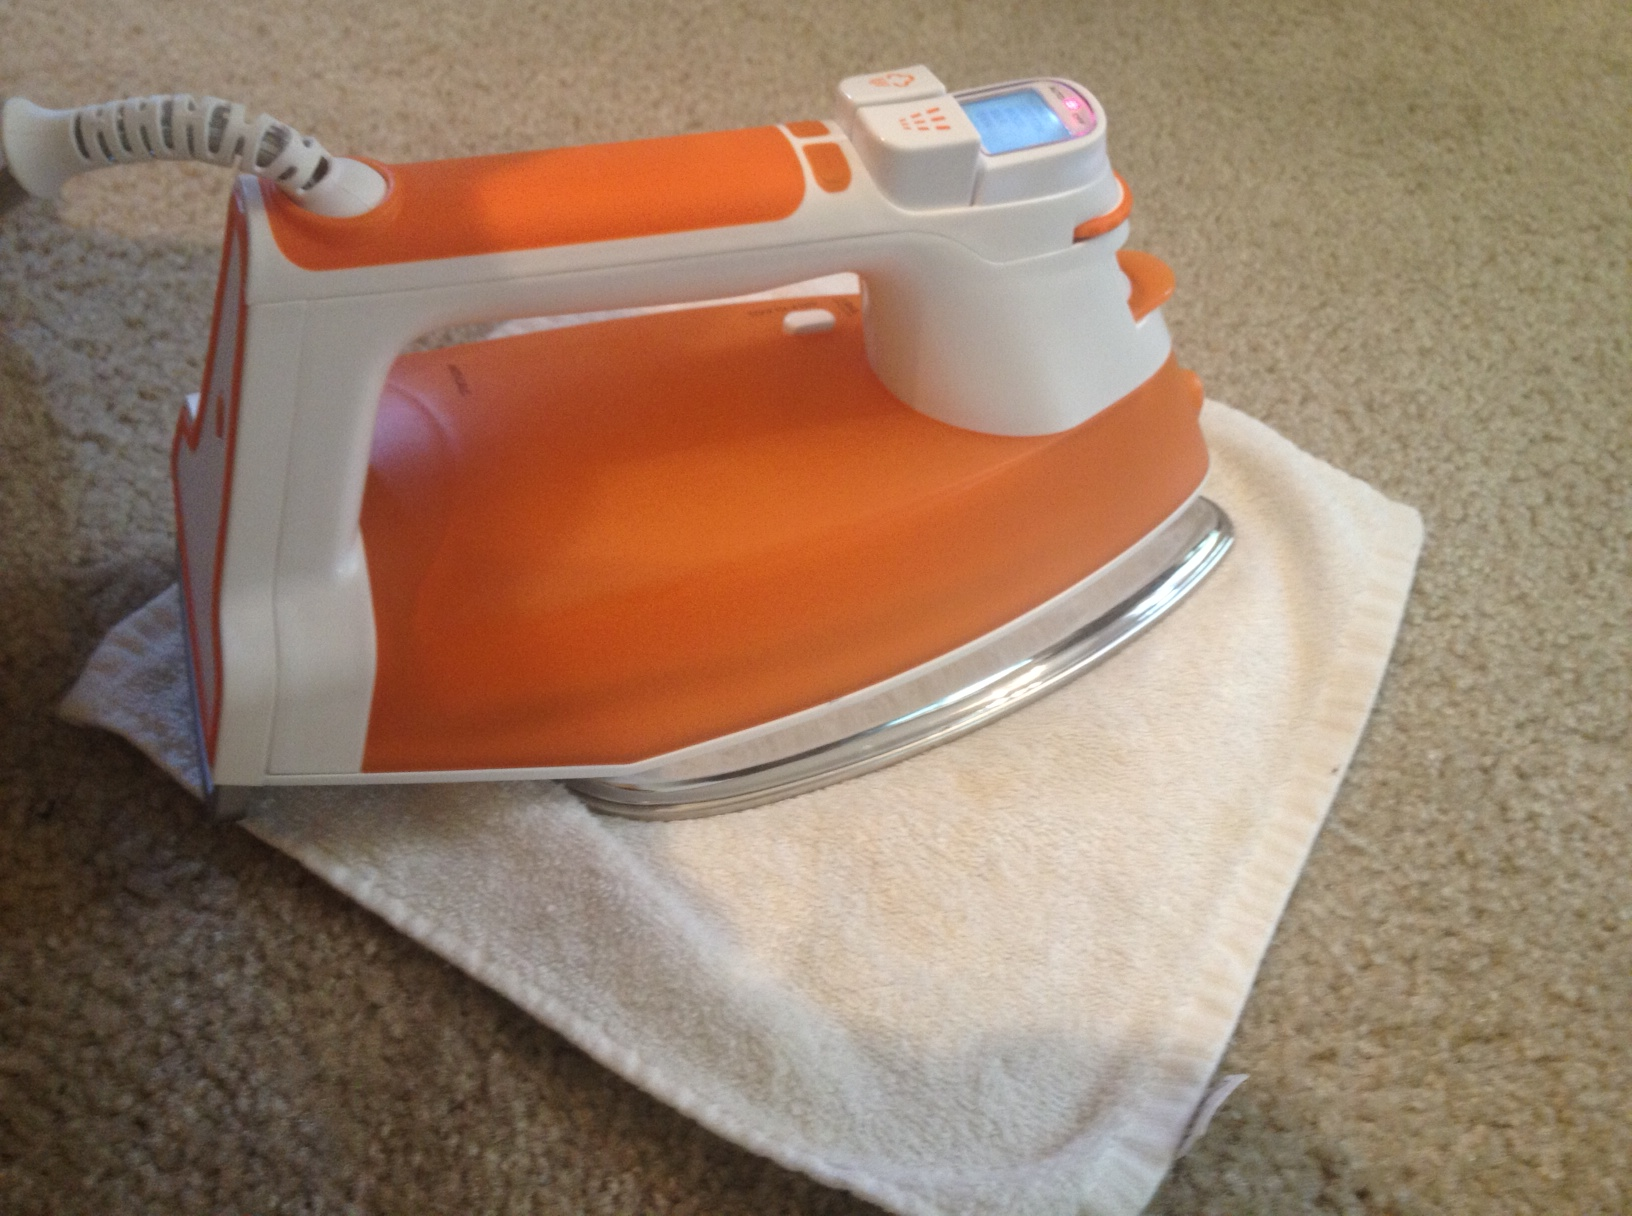 How To Clean Stubborn Carpet Stains With An Iron And